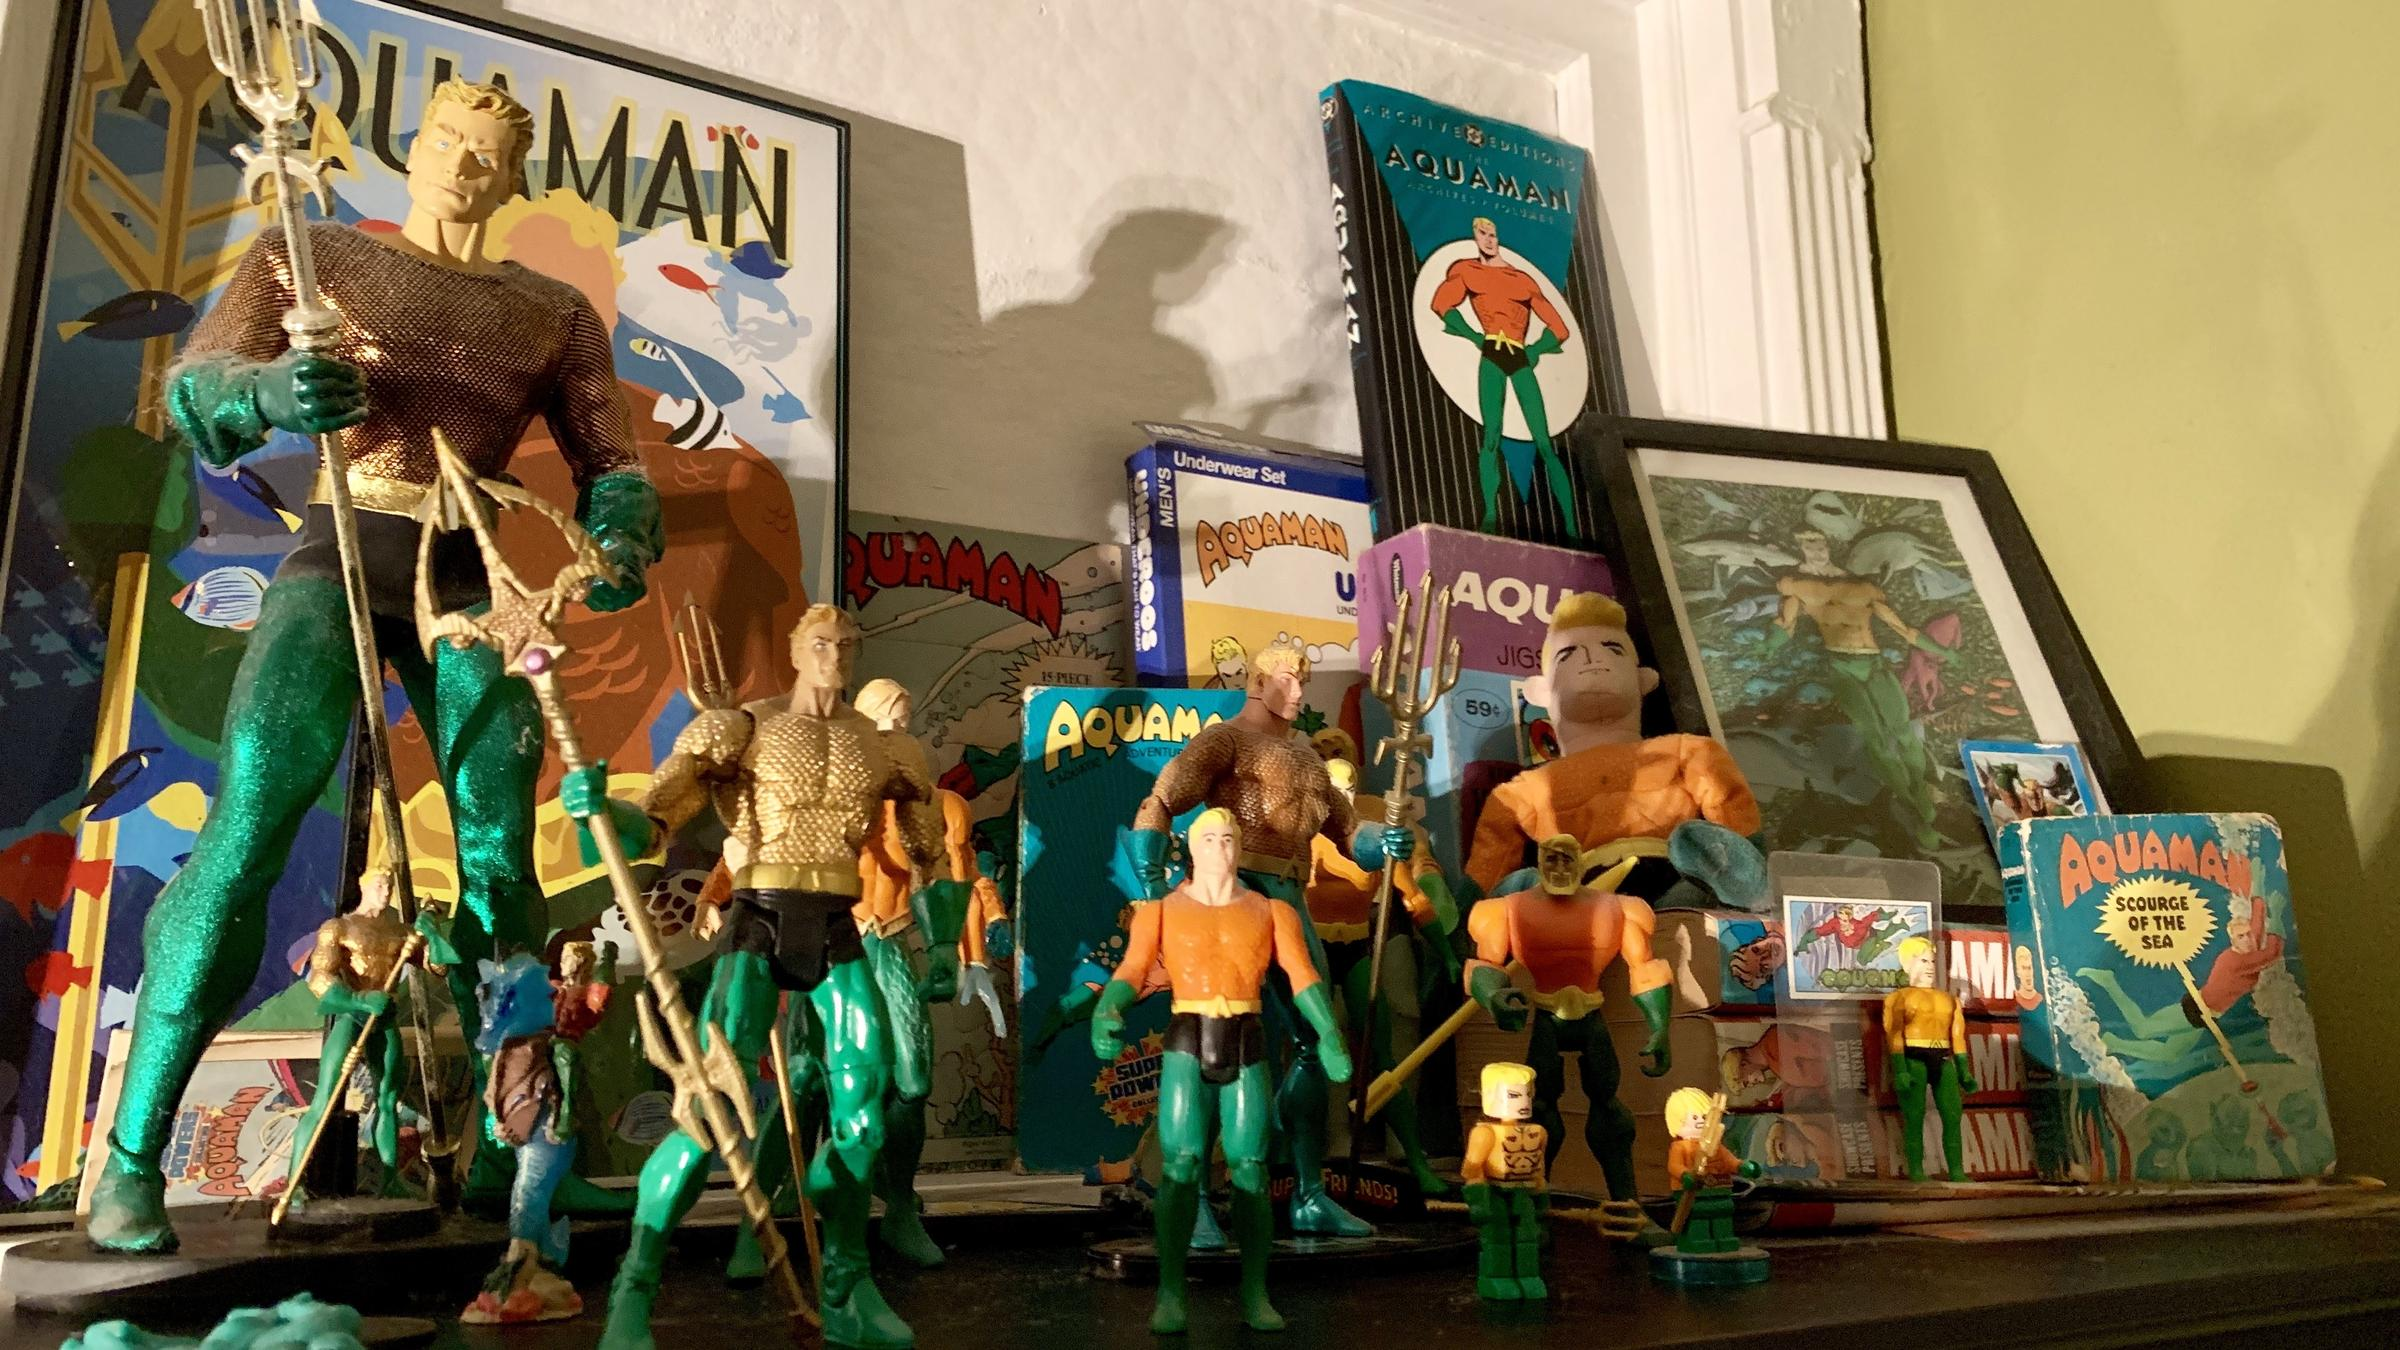 Aquaman, From Super Friend To Surfer Dude: The Bro-Ification Of A Hero